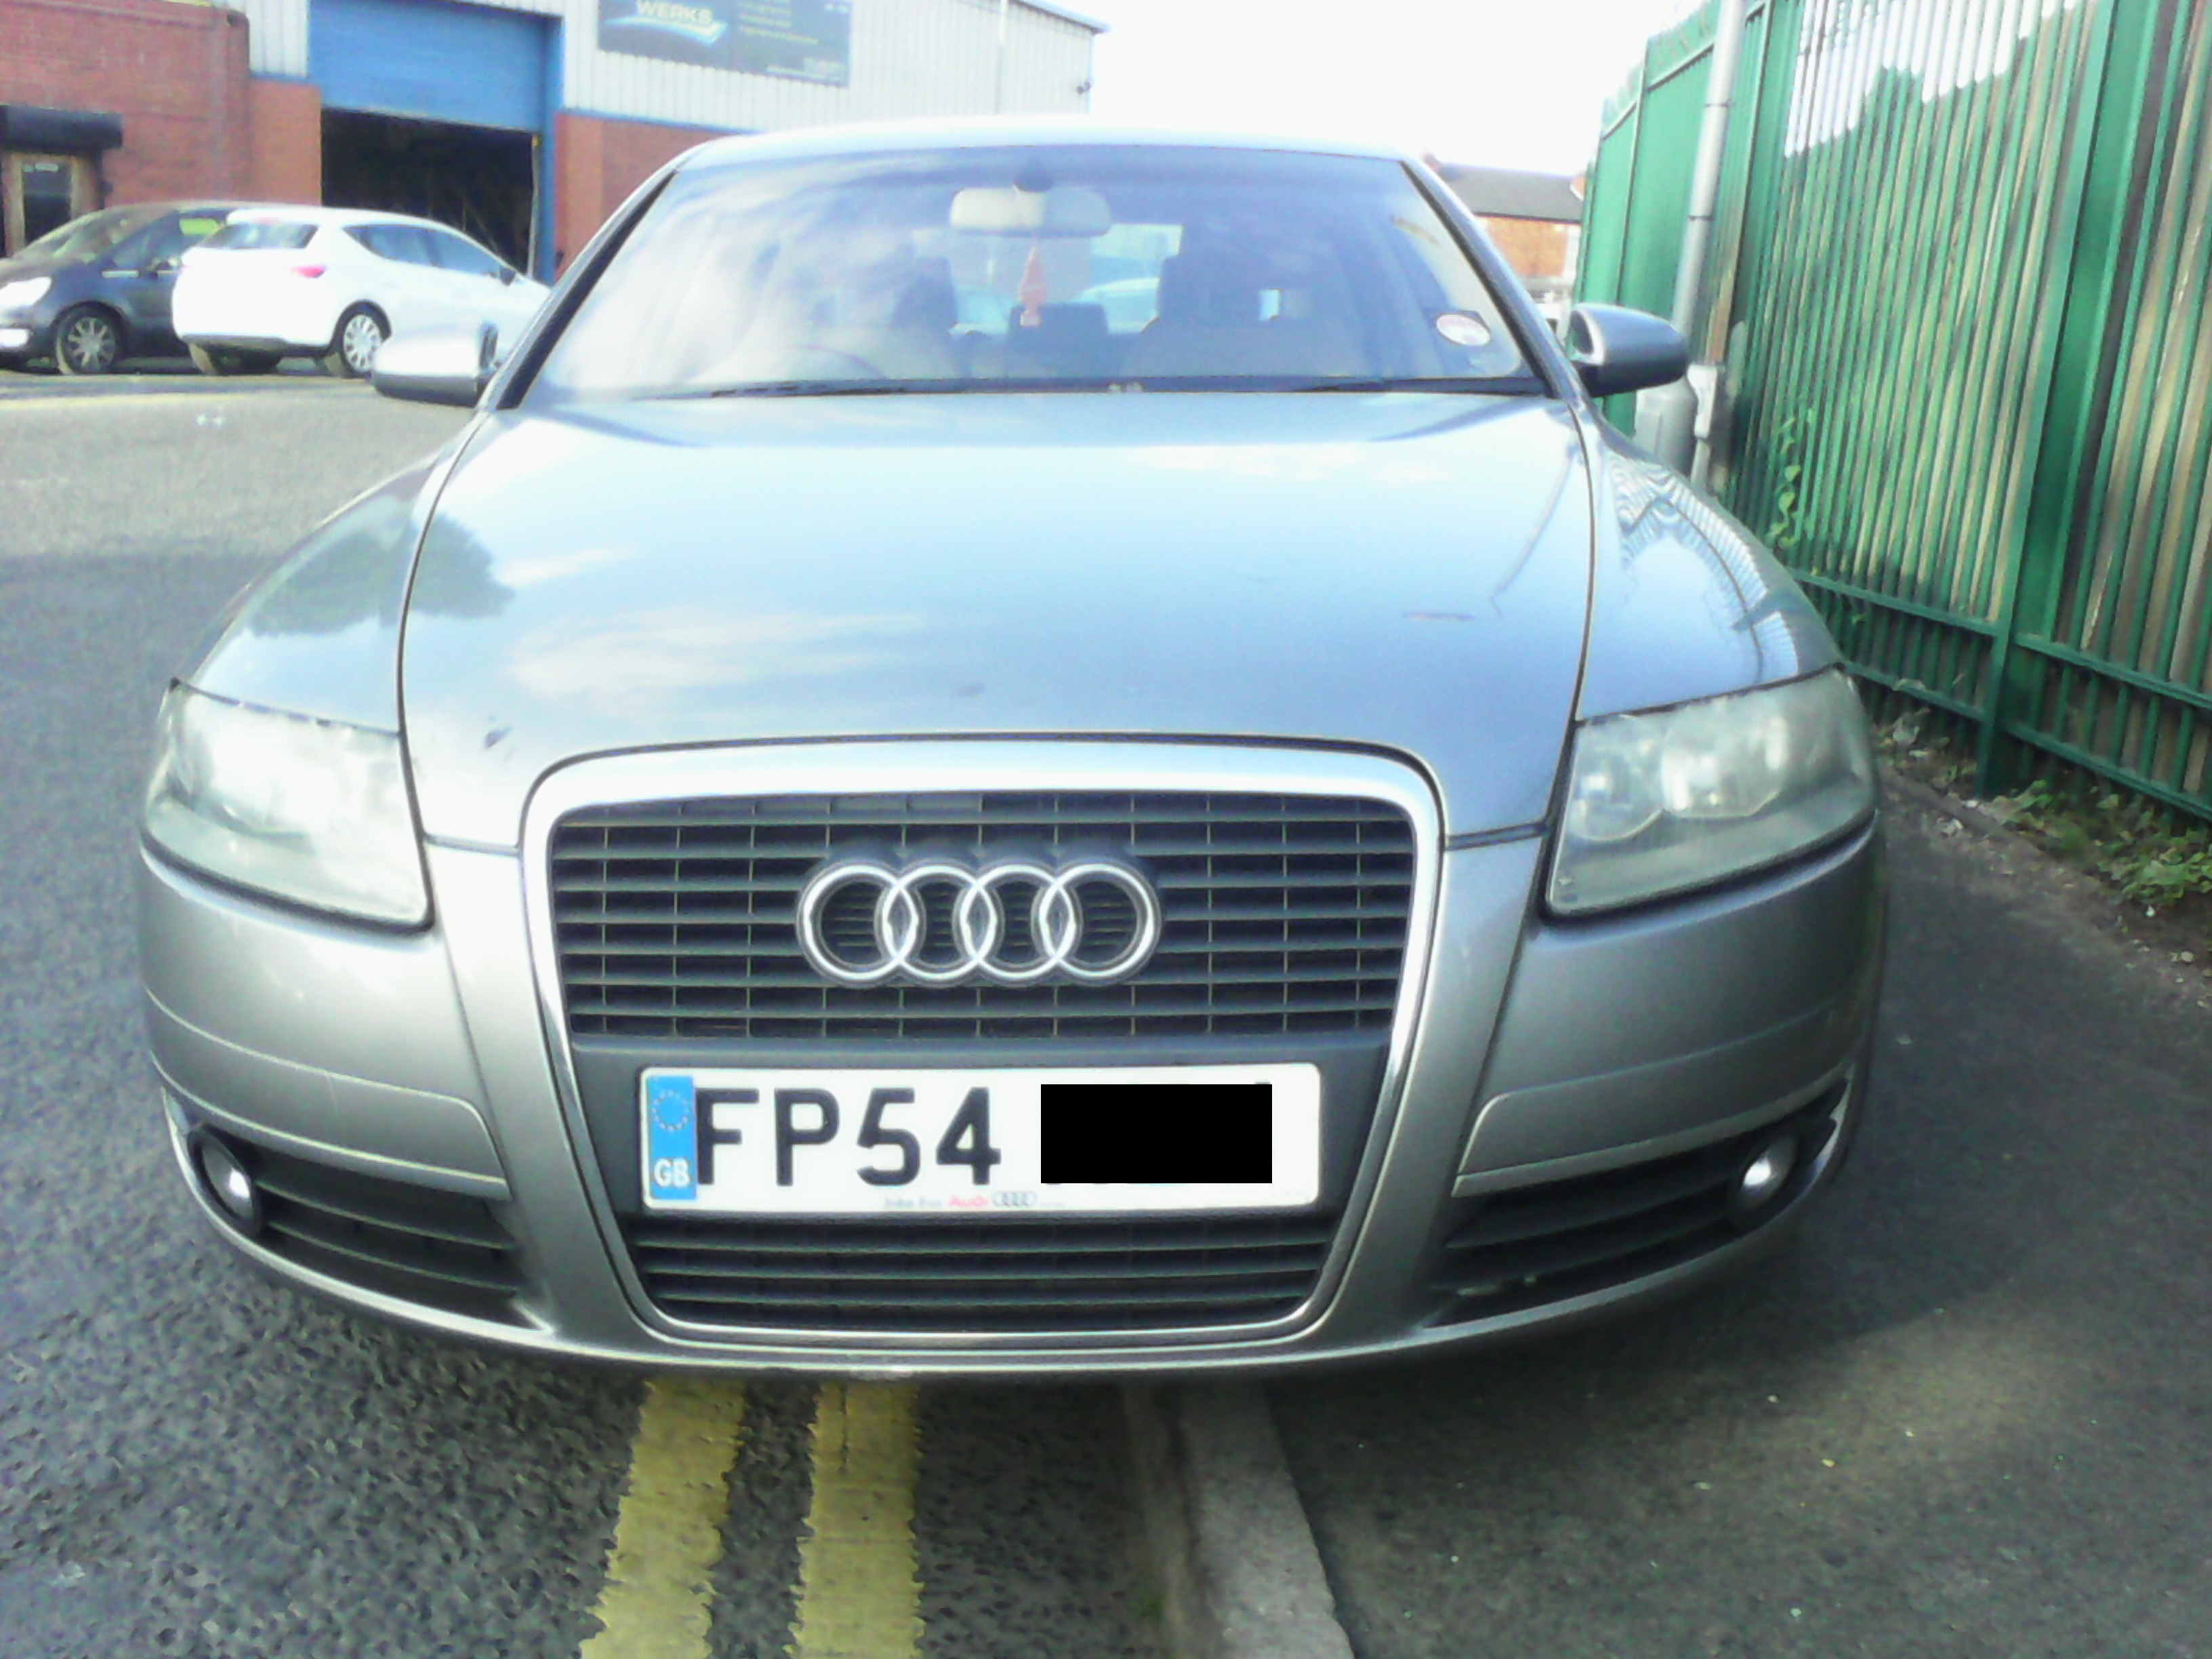 2004 audi a6 2 0 se tdi breaking for parts engine code blb vag spares. Black Bedroom Furniture Sets. Home Design Ideas